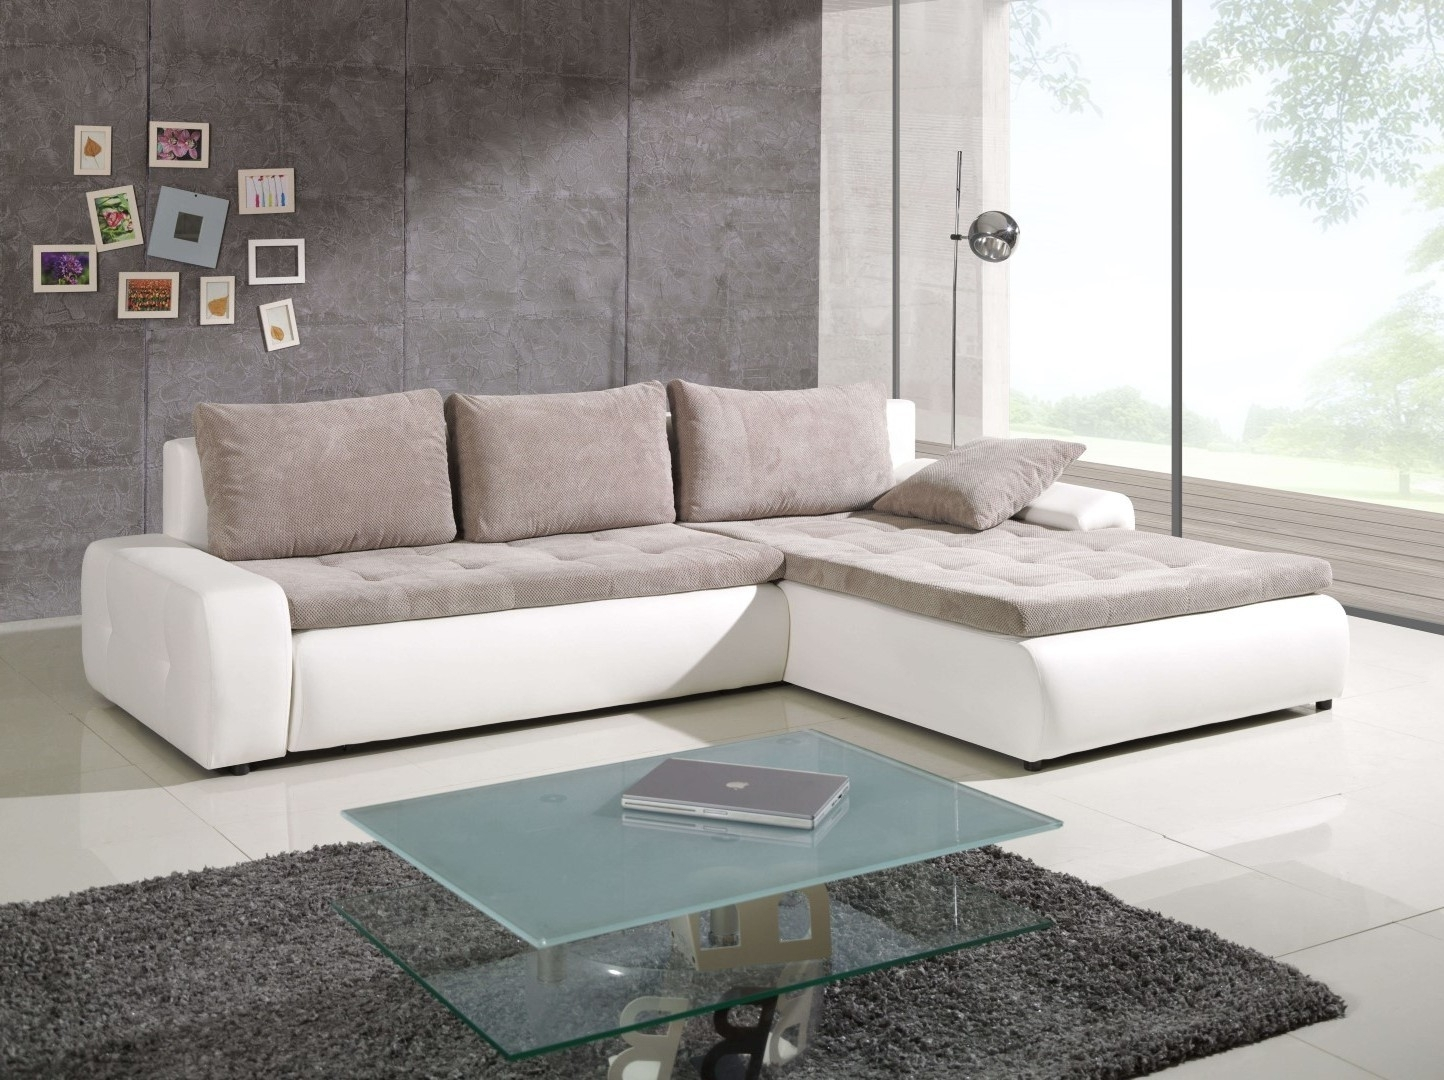 Shop Galileo Sectional Sleeper Sofa With Storage Universal with regard to Sectional Sofas With Storage (Image 10 of 10)